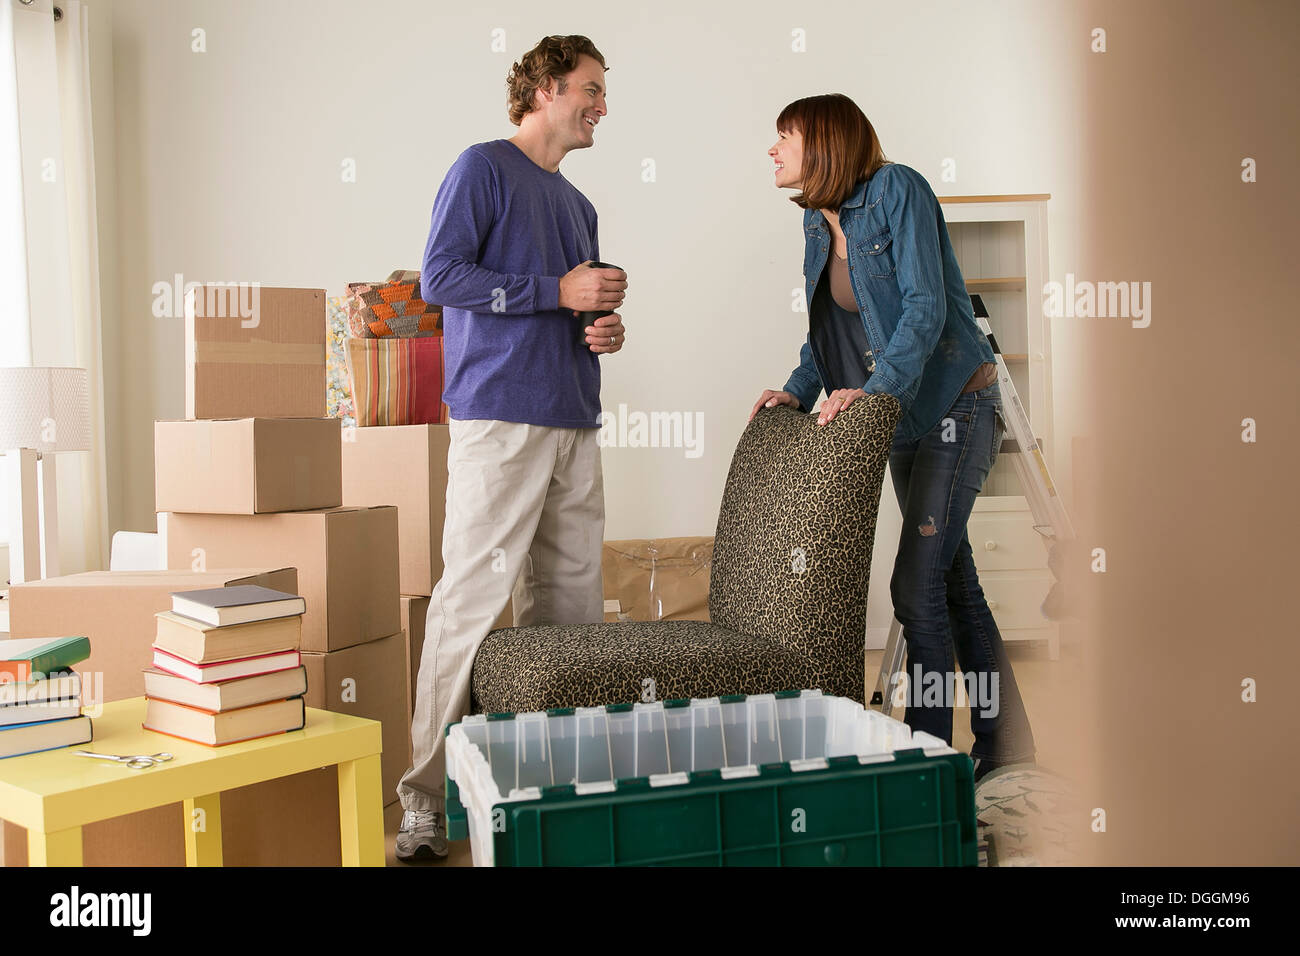 Couple in sitting room during house move - Stock Image